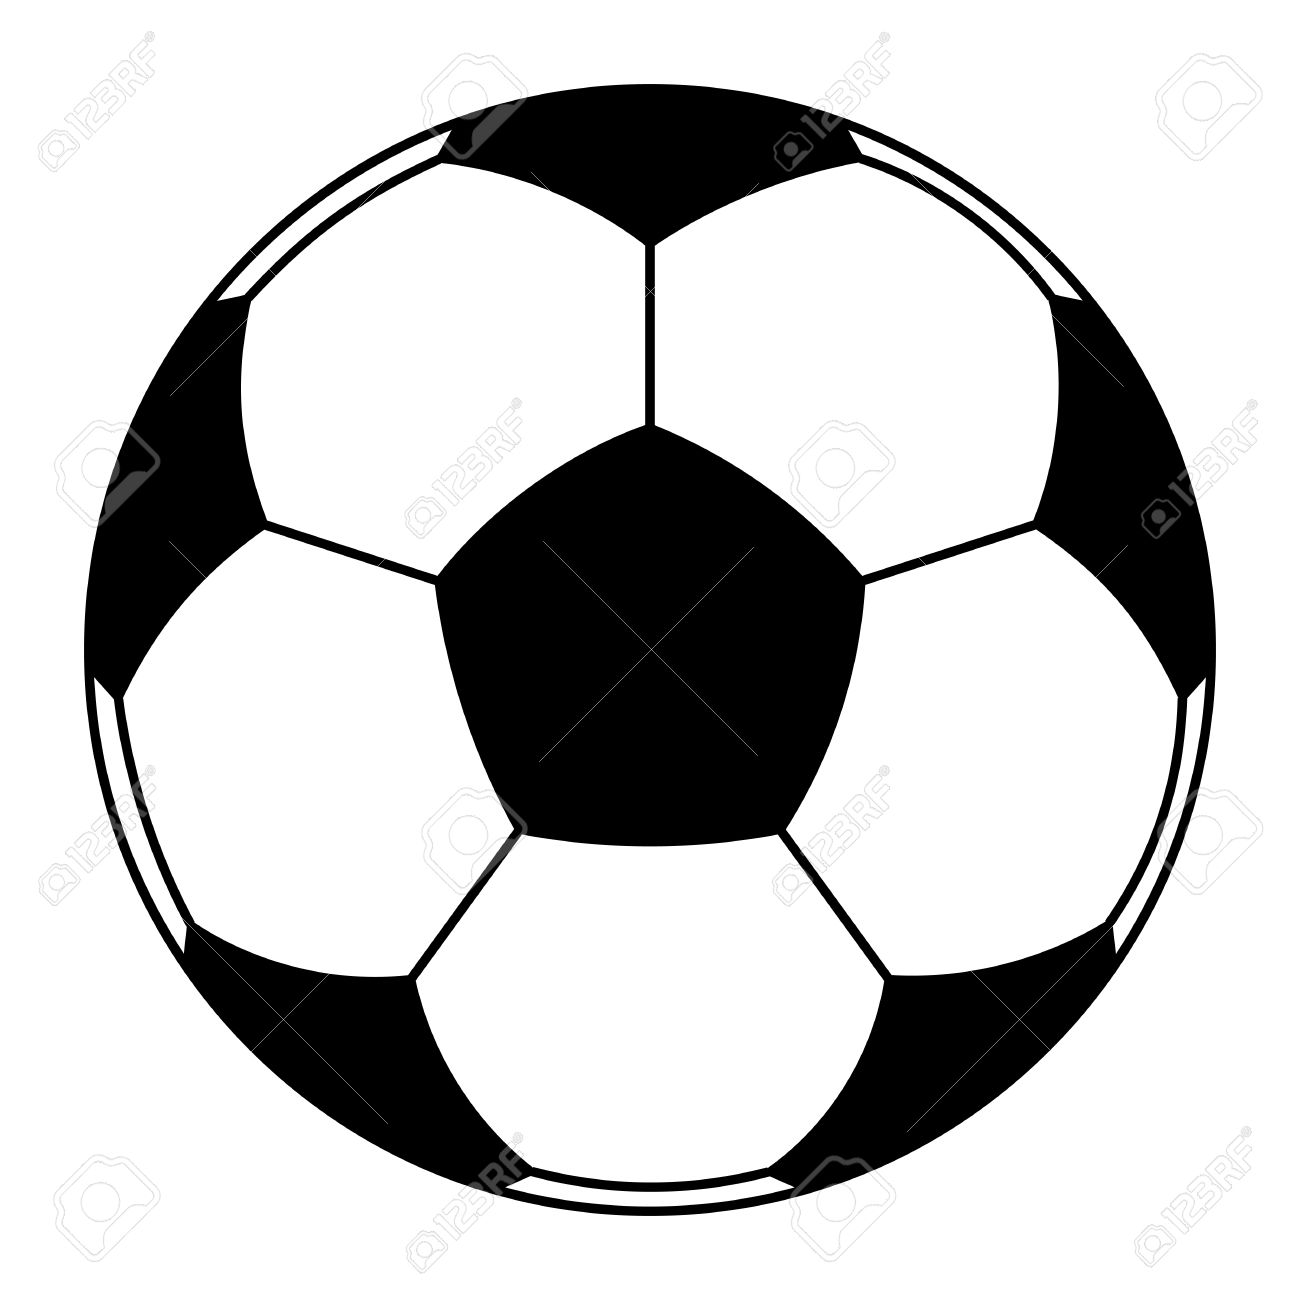 football ball soccer illustration clip art royalty free cliparts rh 123rf com free soccer clipart images soccer goalie clipart free